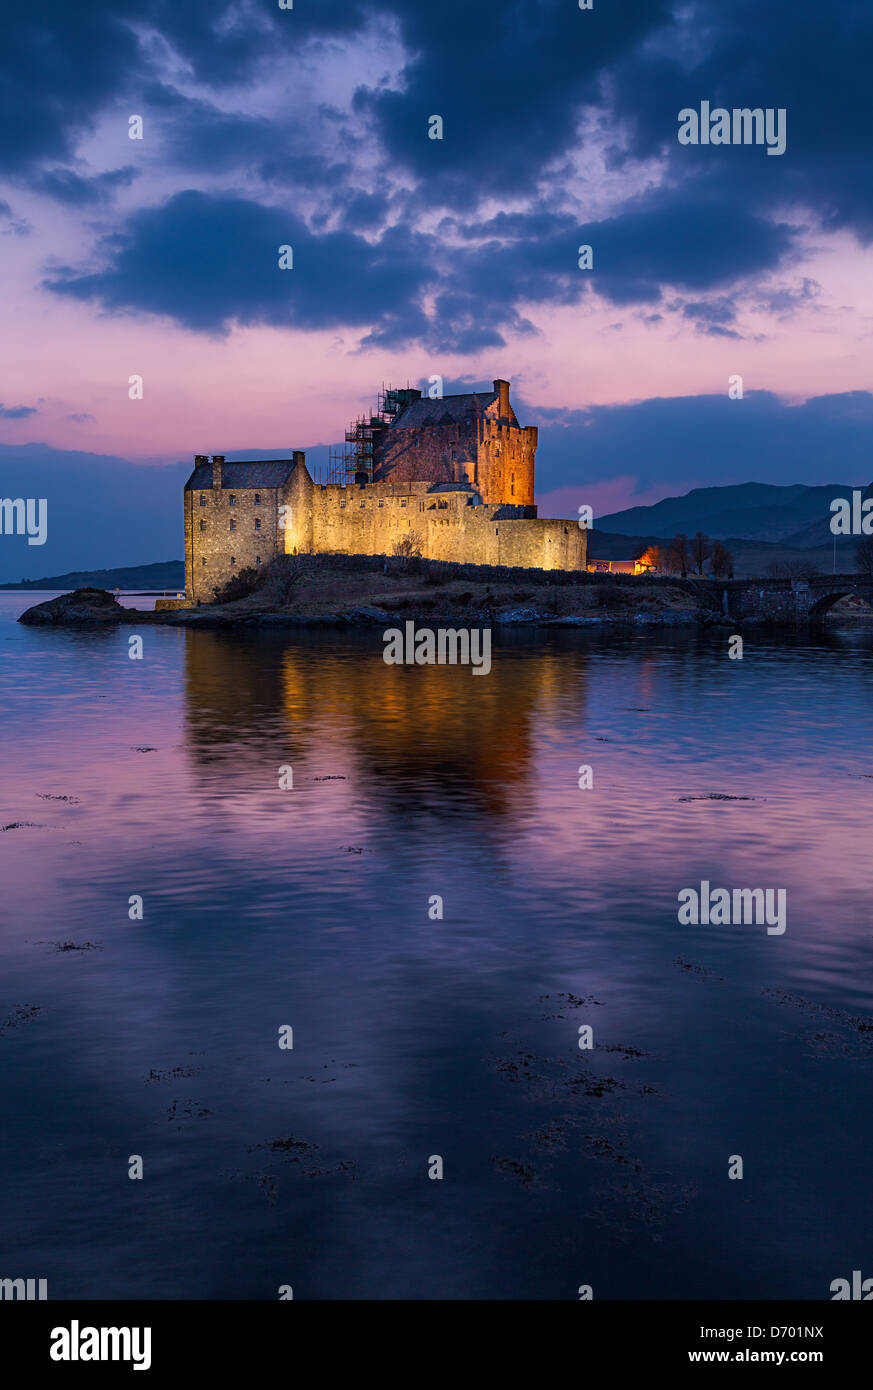 Eilean Donan Castle afte the sun has set, with the sky turned a magenta pink and the castle illuminated by floodlighting Stock Photo